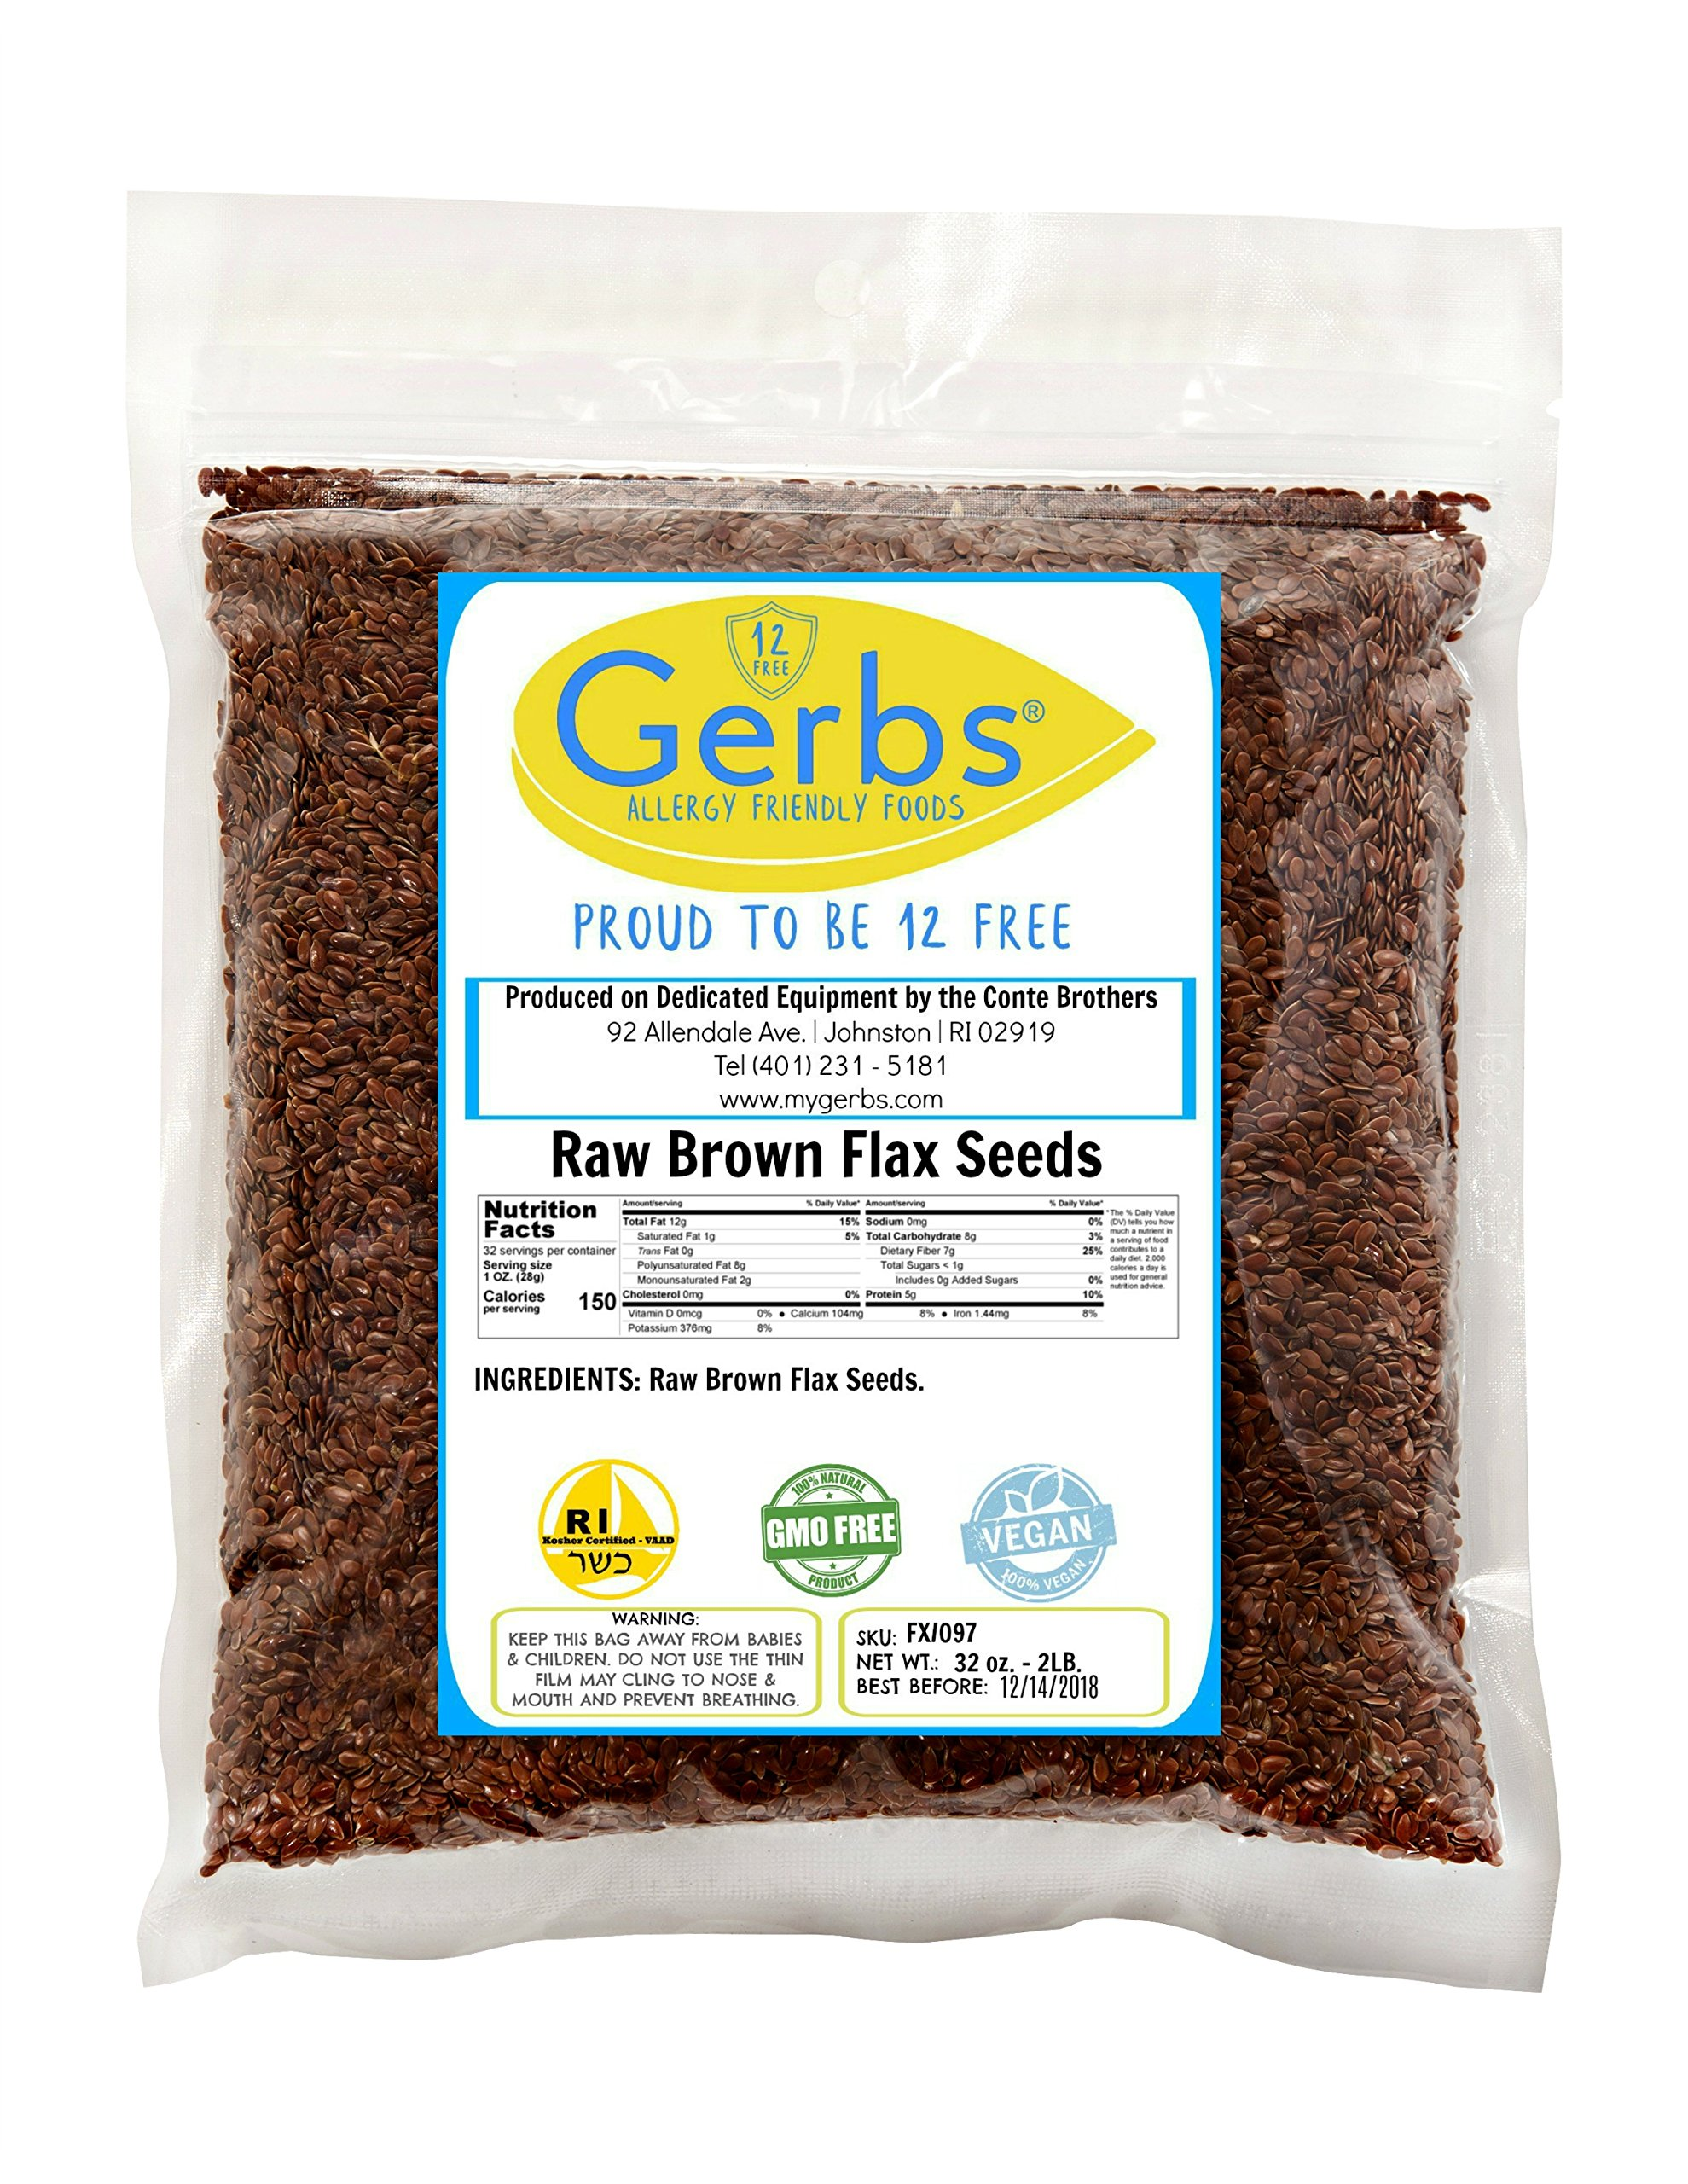 Raw Flax Seeds by Gerbs 2 LBS - Top 10 Food Allergen Free & Non GMO - Vegan & Kosher Premium Brown Flax Product of Rhode Island